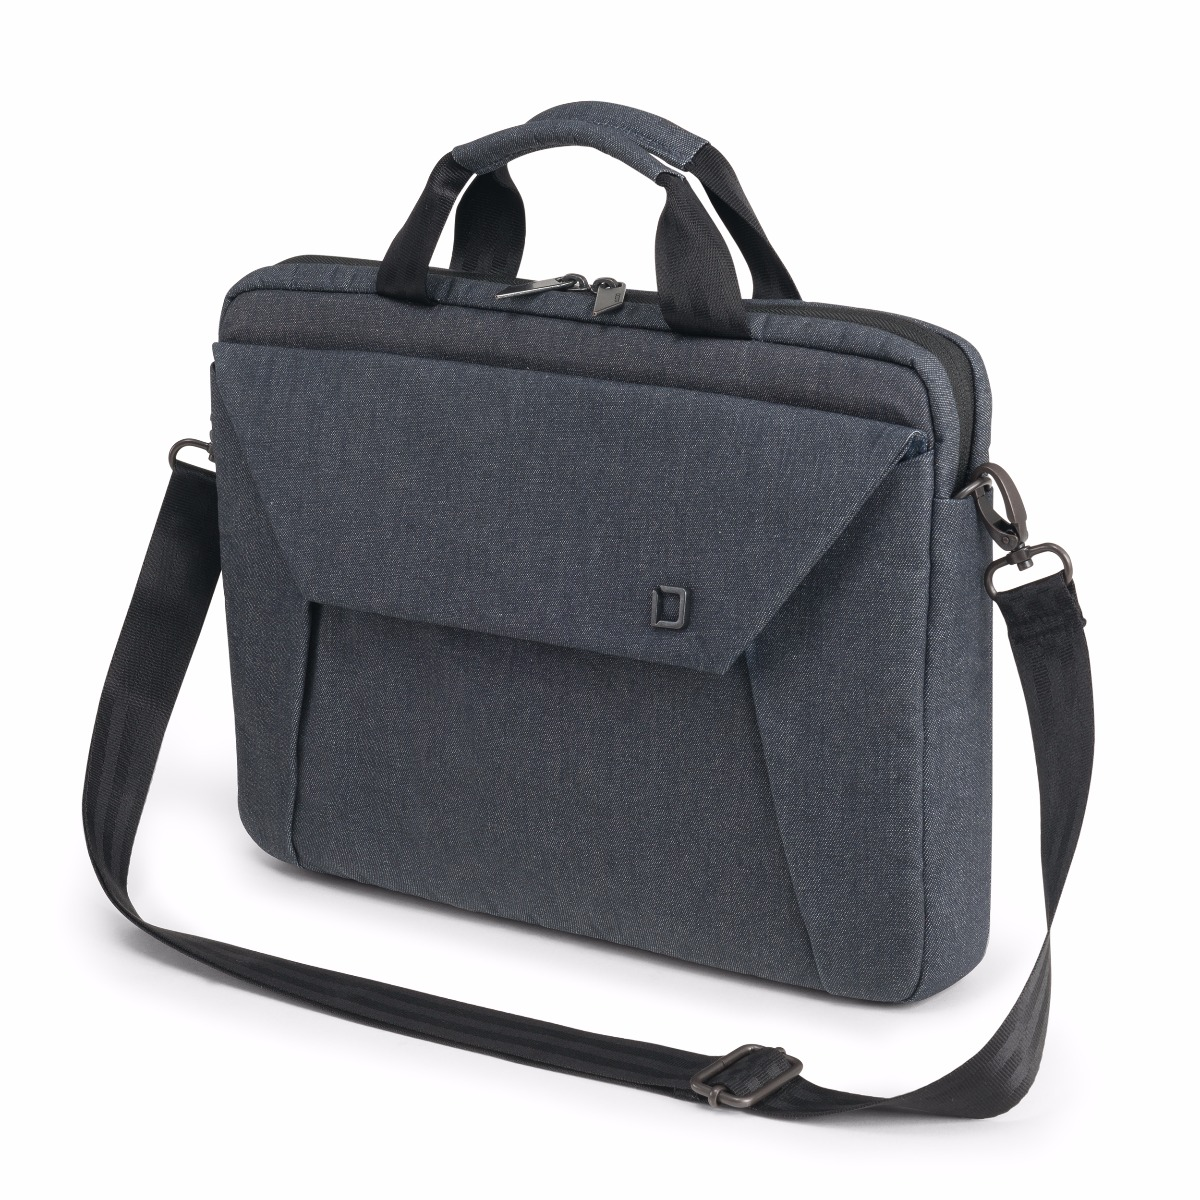 D31239 Dicota Slim Case EDGE 12-13.3 blue denim